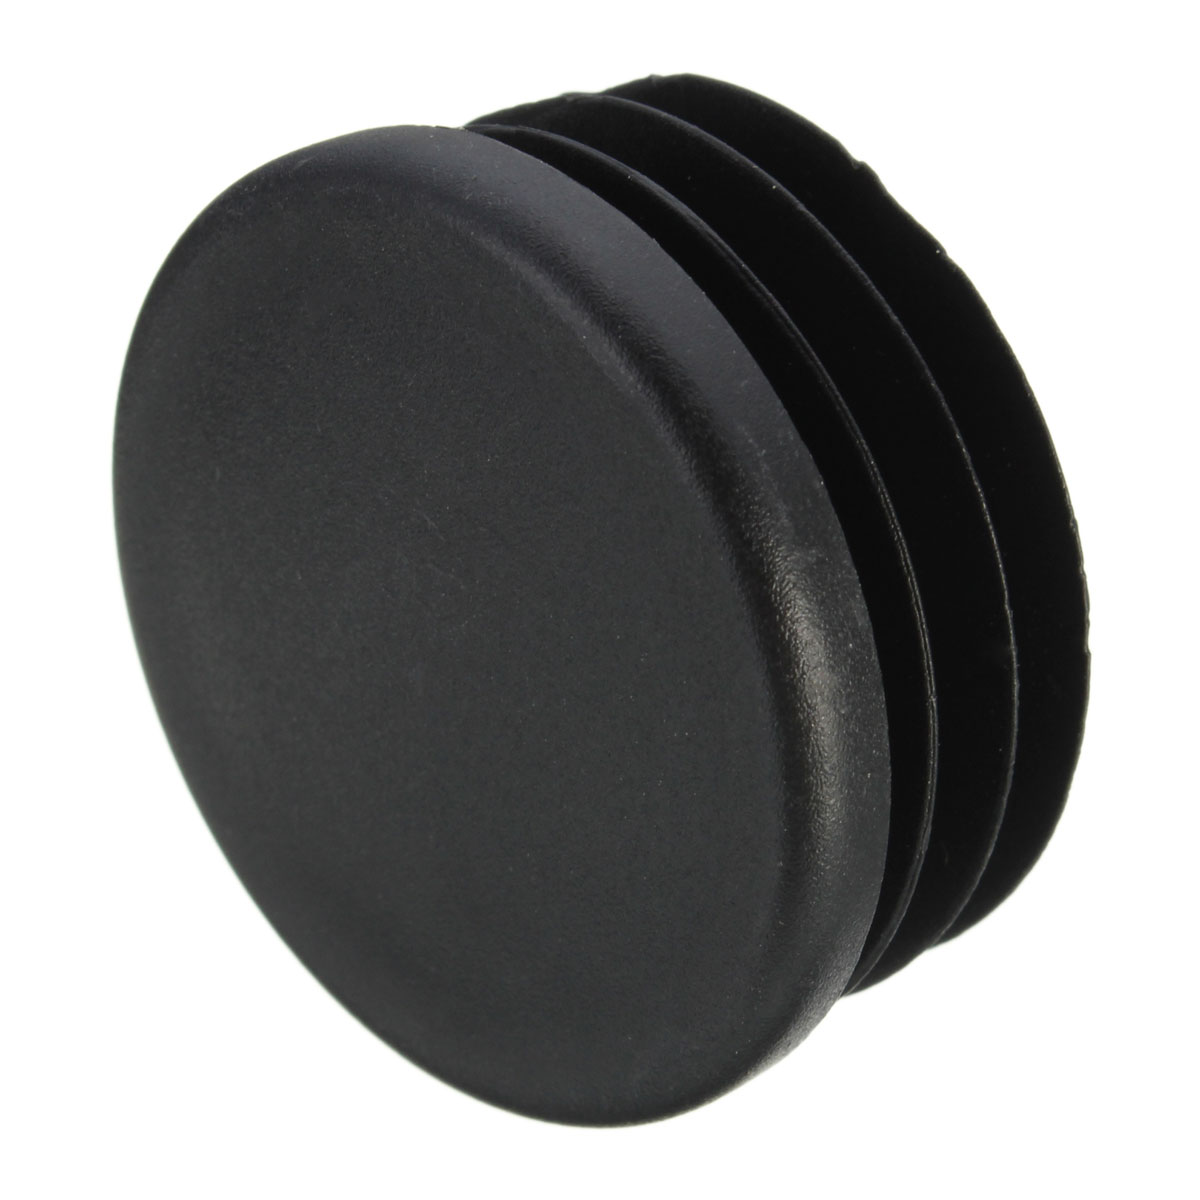 Round plastic end caps insert plugs lazada indonesia